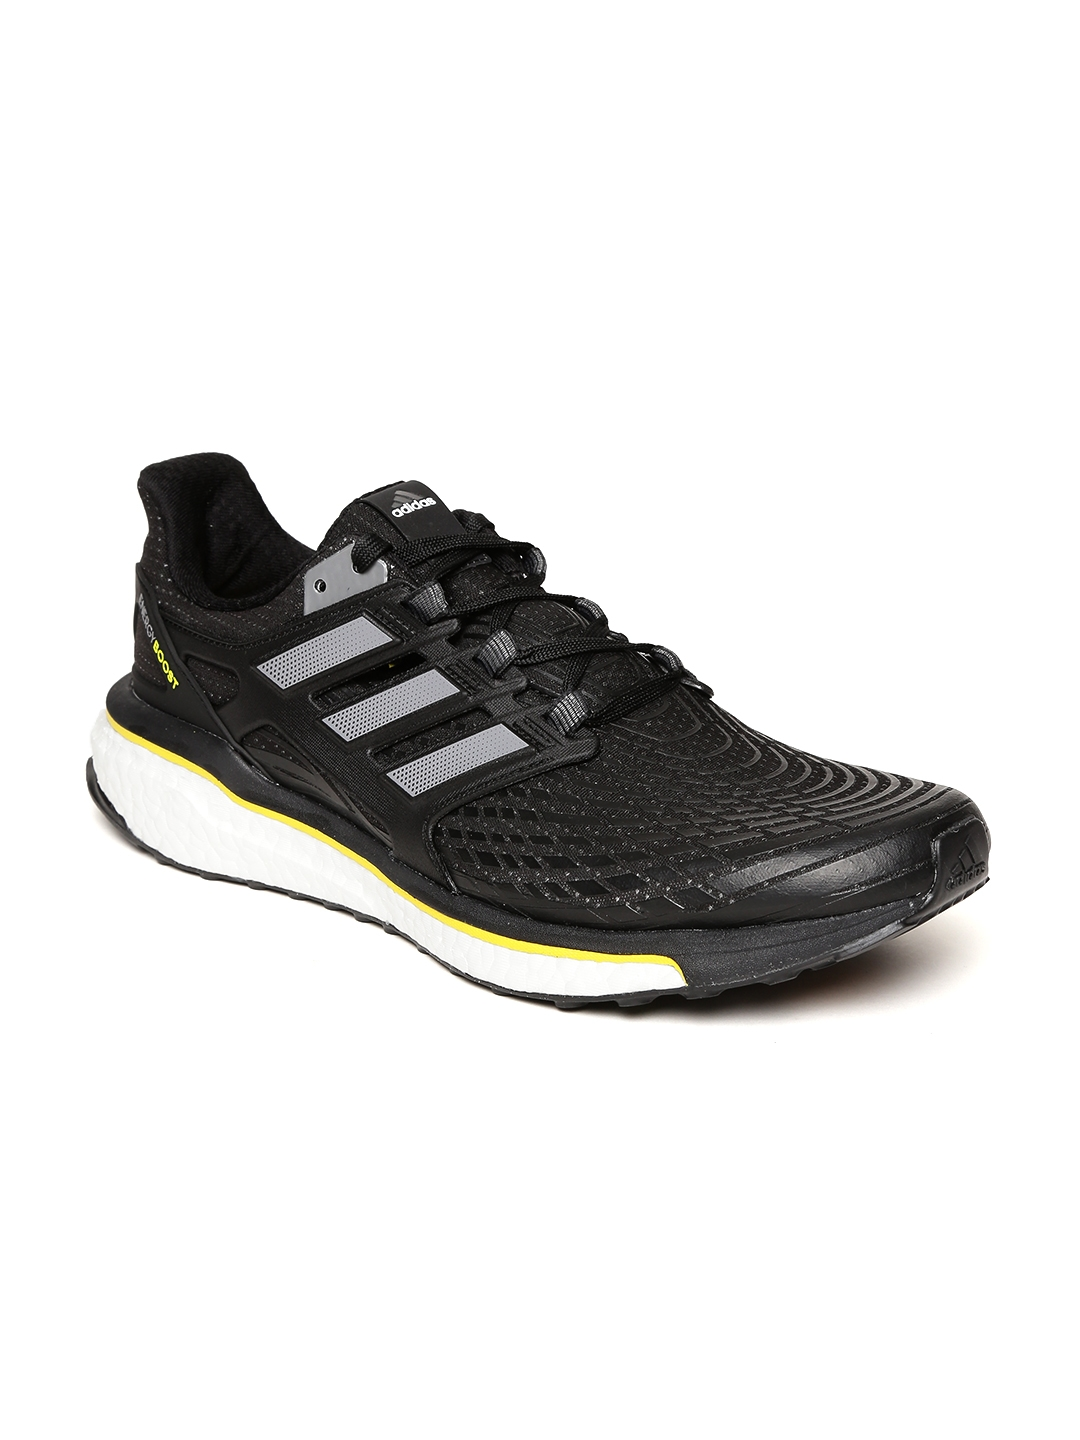 on sale e727a 19a44 ADIDAS Men Black Energy Boost Running Shoes